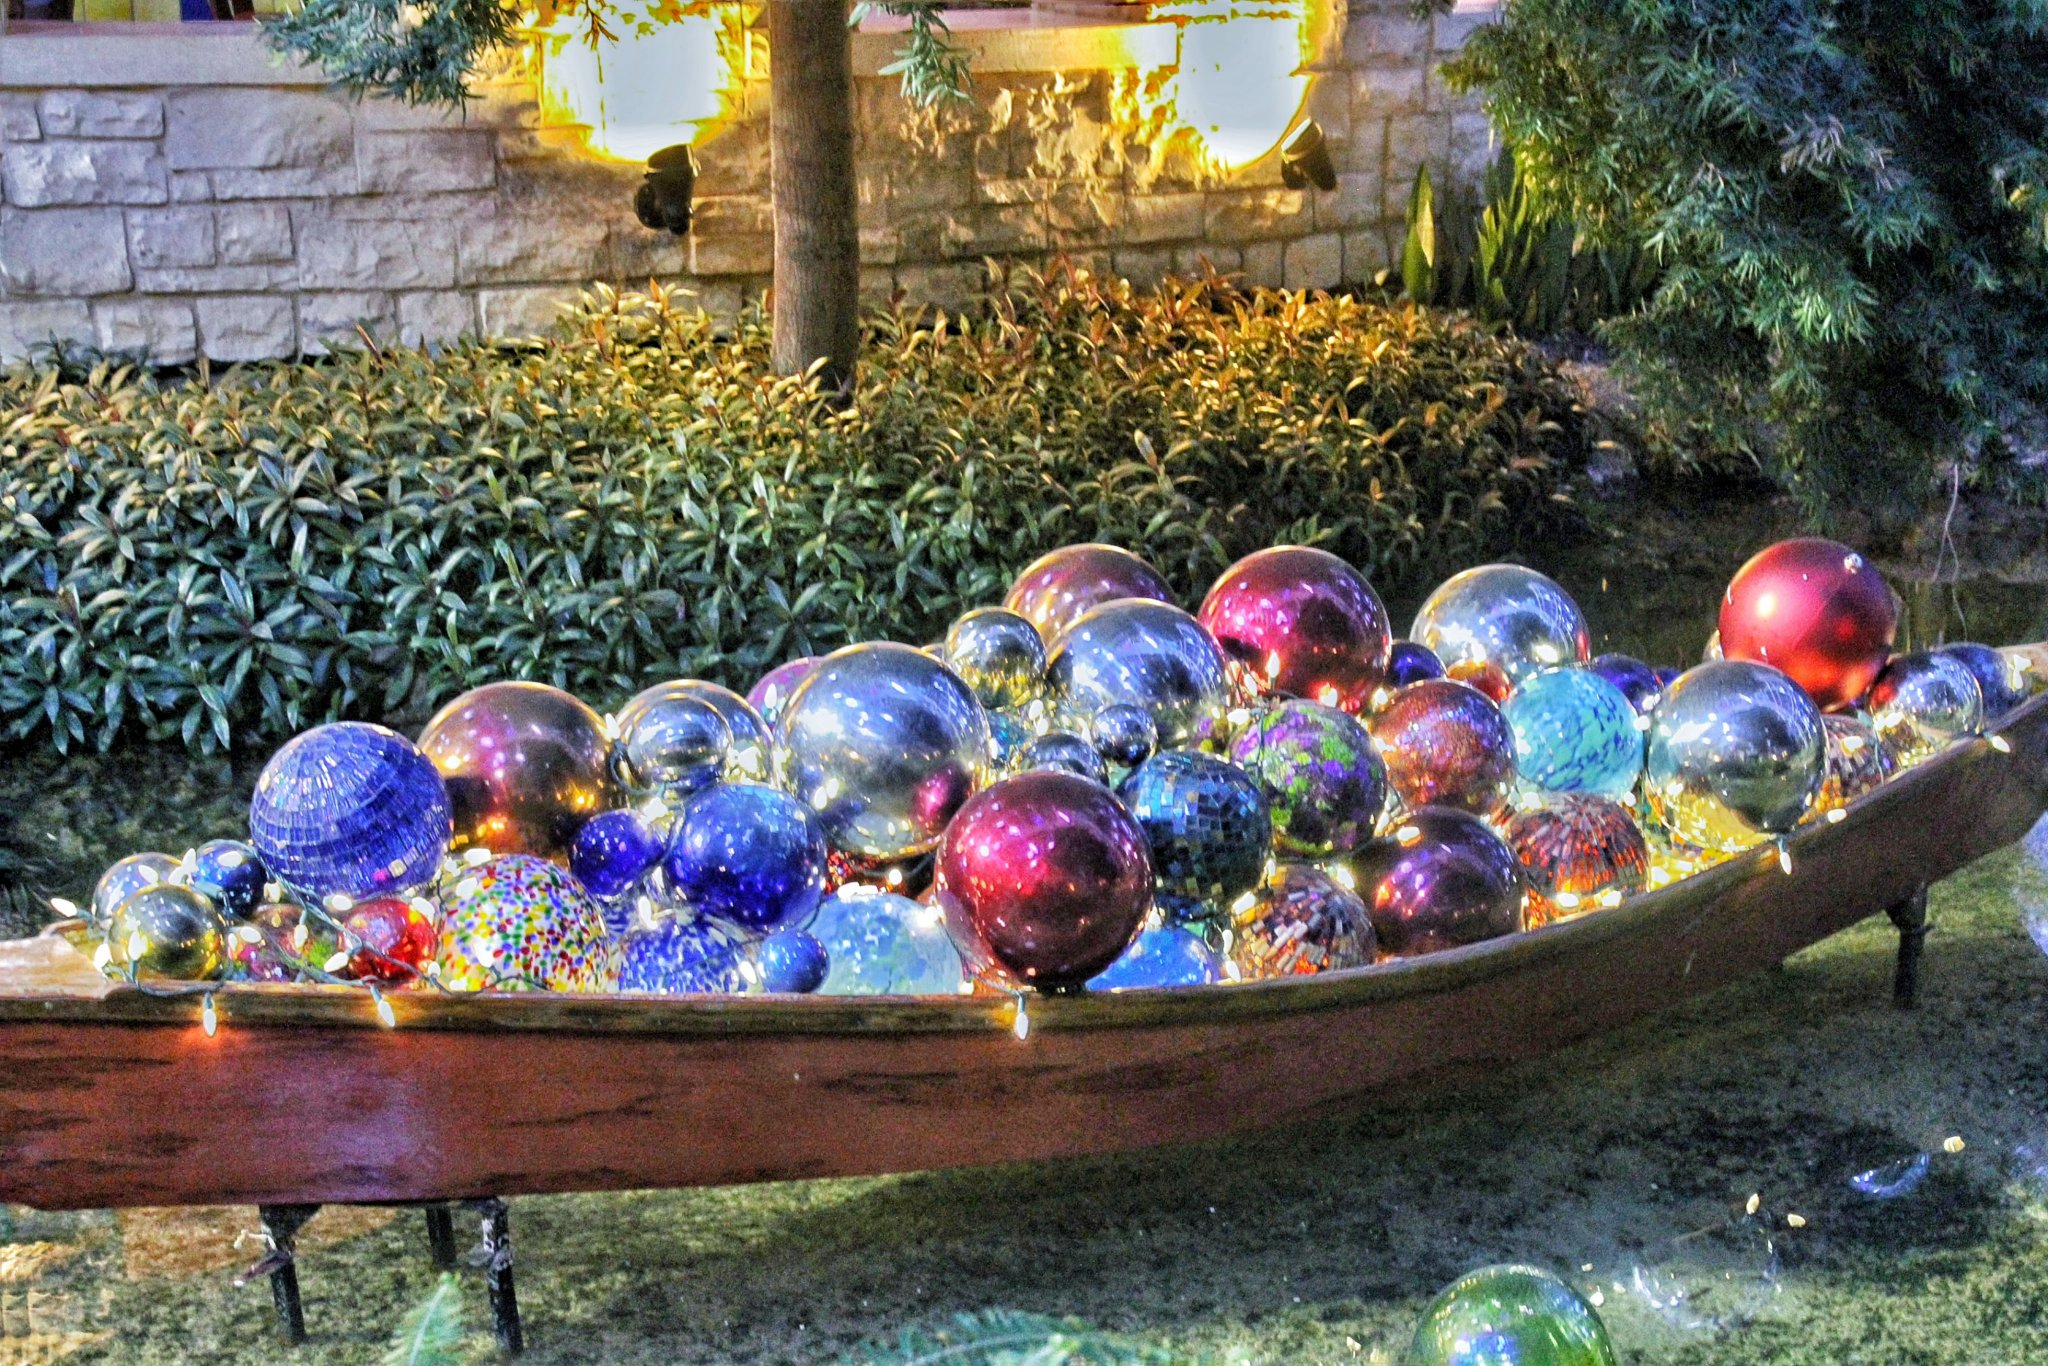 Ornaments and Decor at the Gaylord Texan Resort Hotel & Convention Center